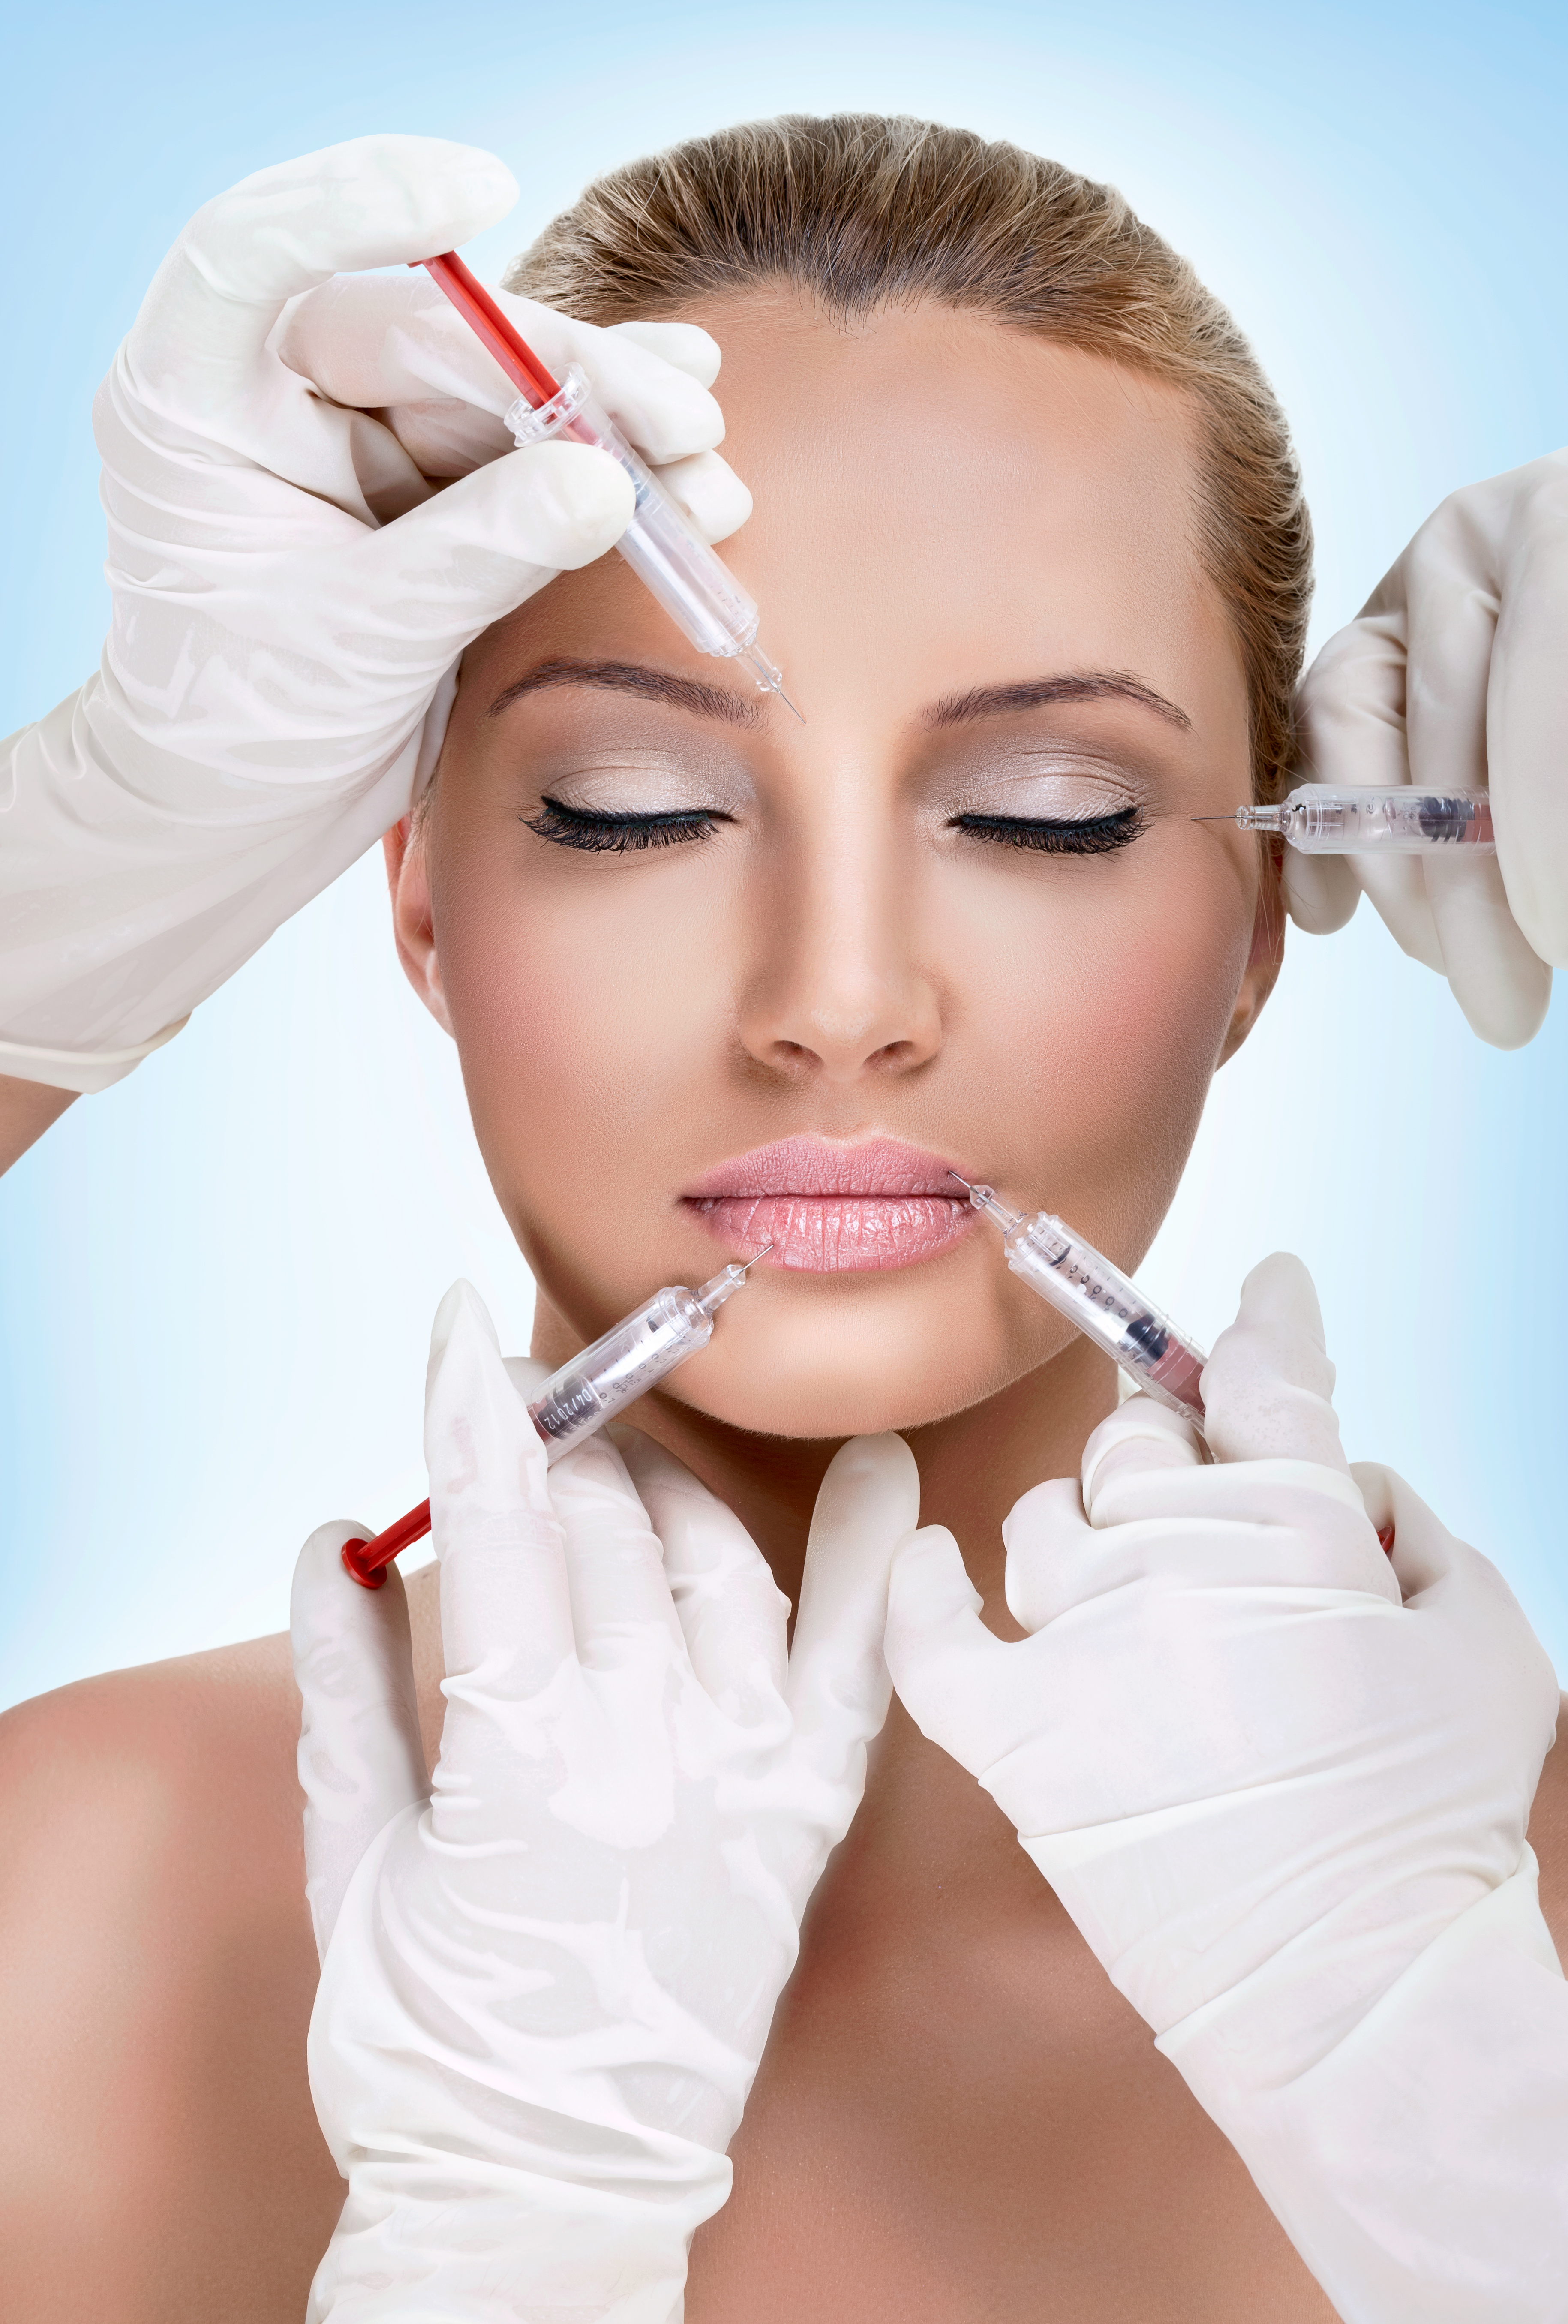 Injections of botox,  woman having beauty treatment